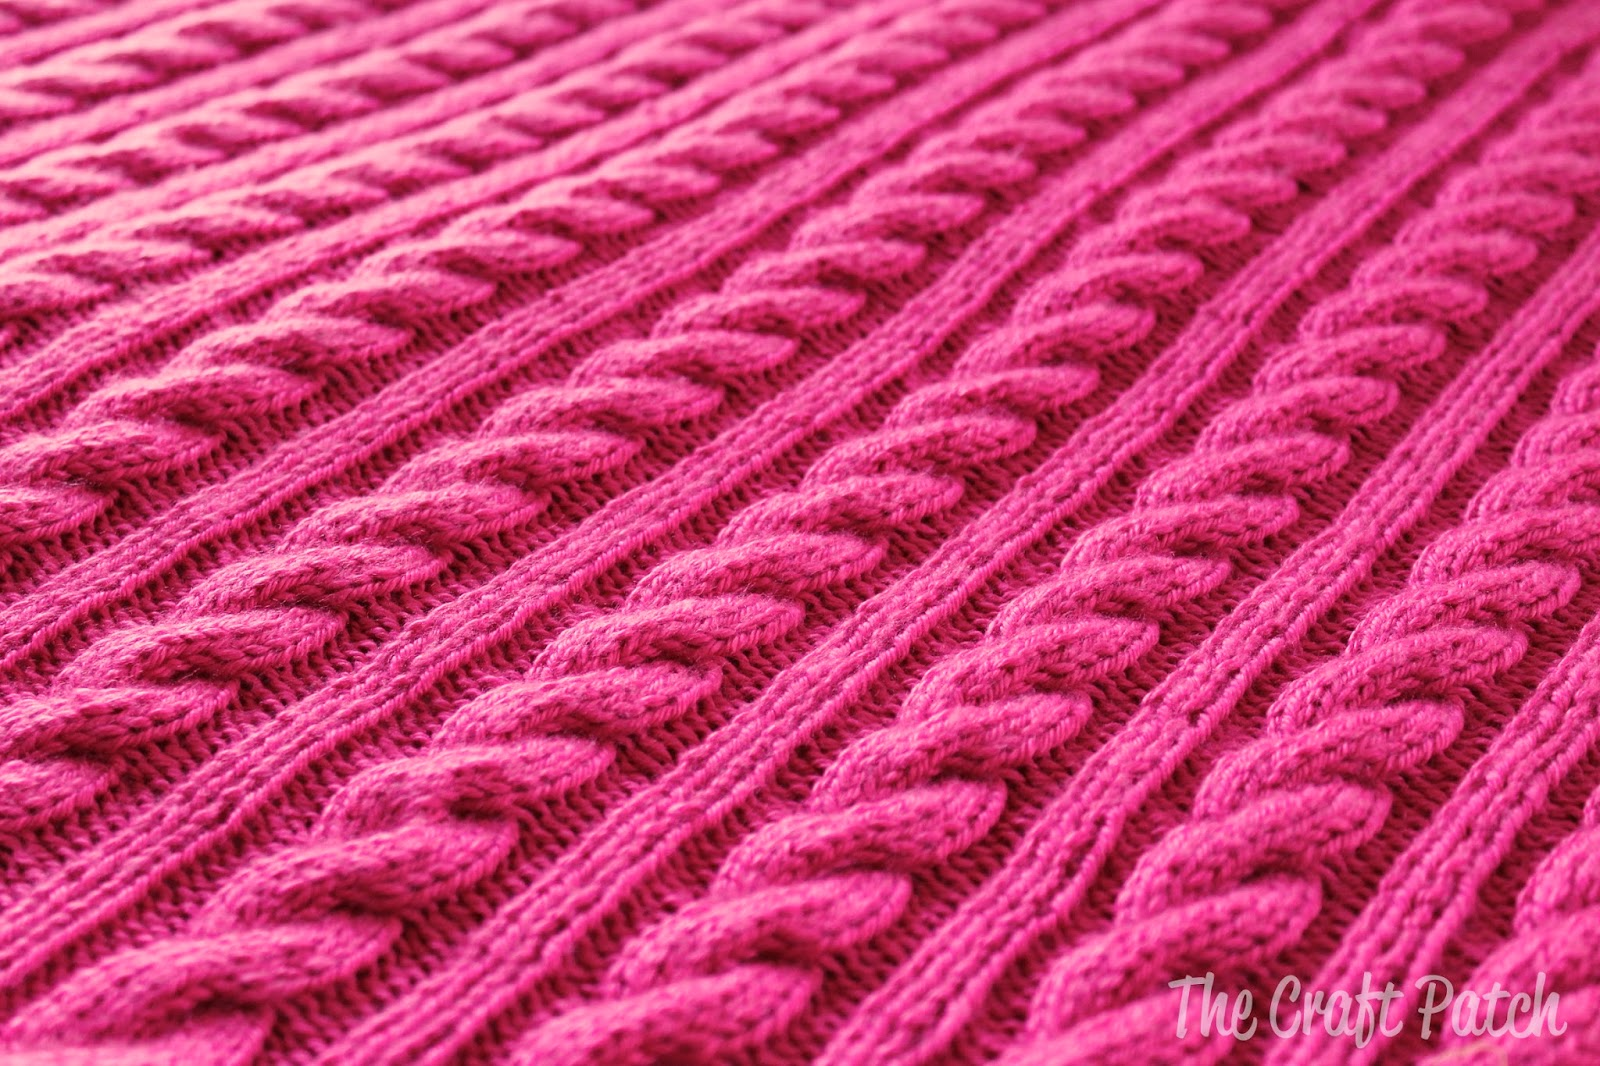 The Craft Patch: Cable Knit Baby Blanket